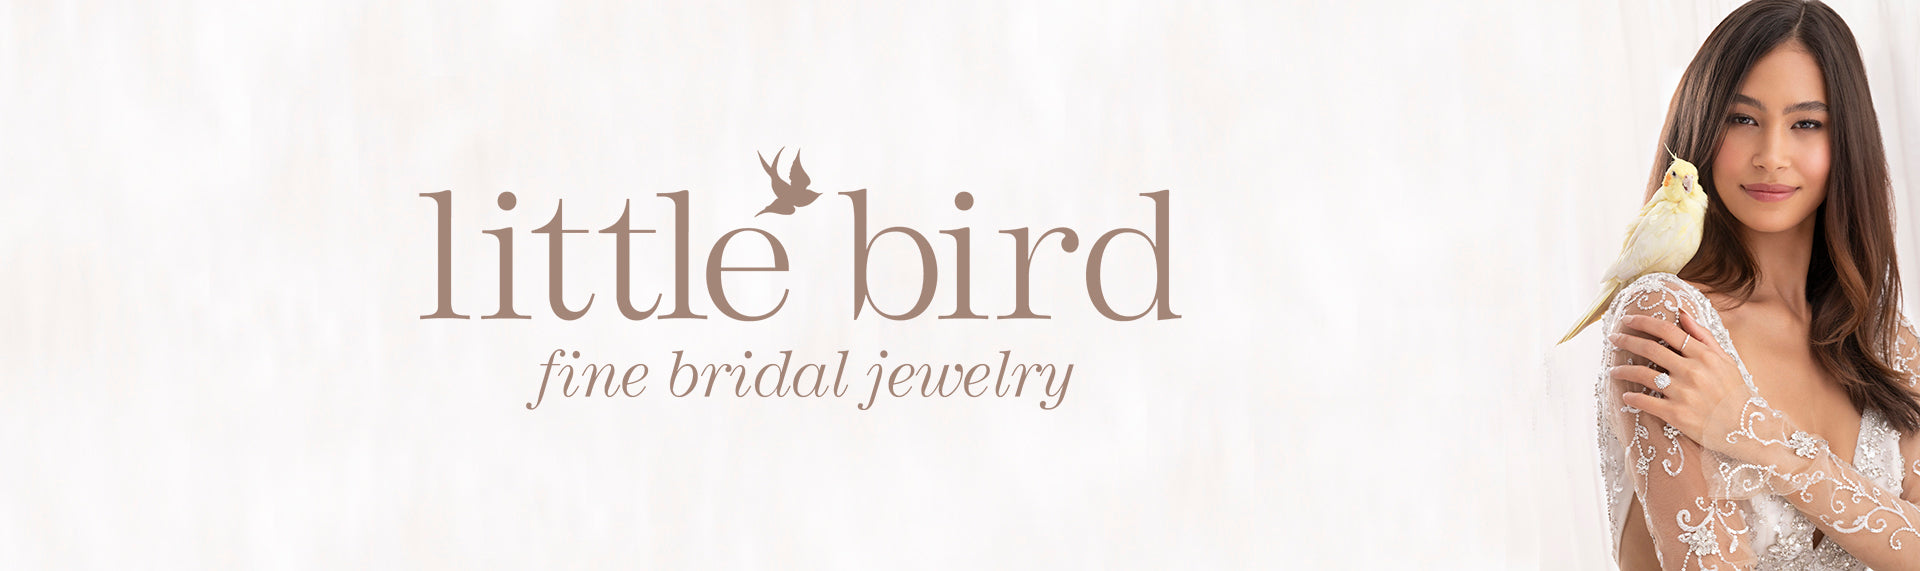 Little Bird - Fine bridal jewelry.